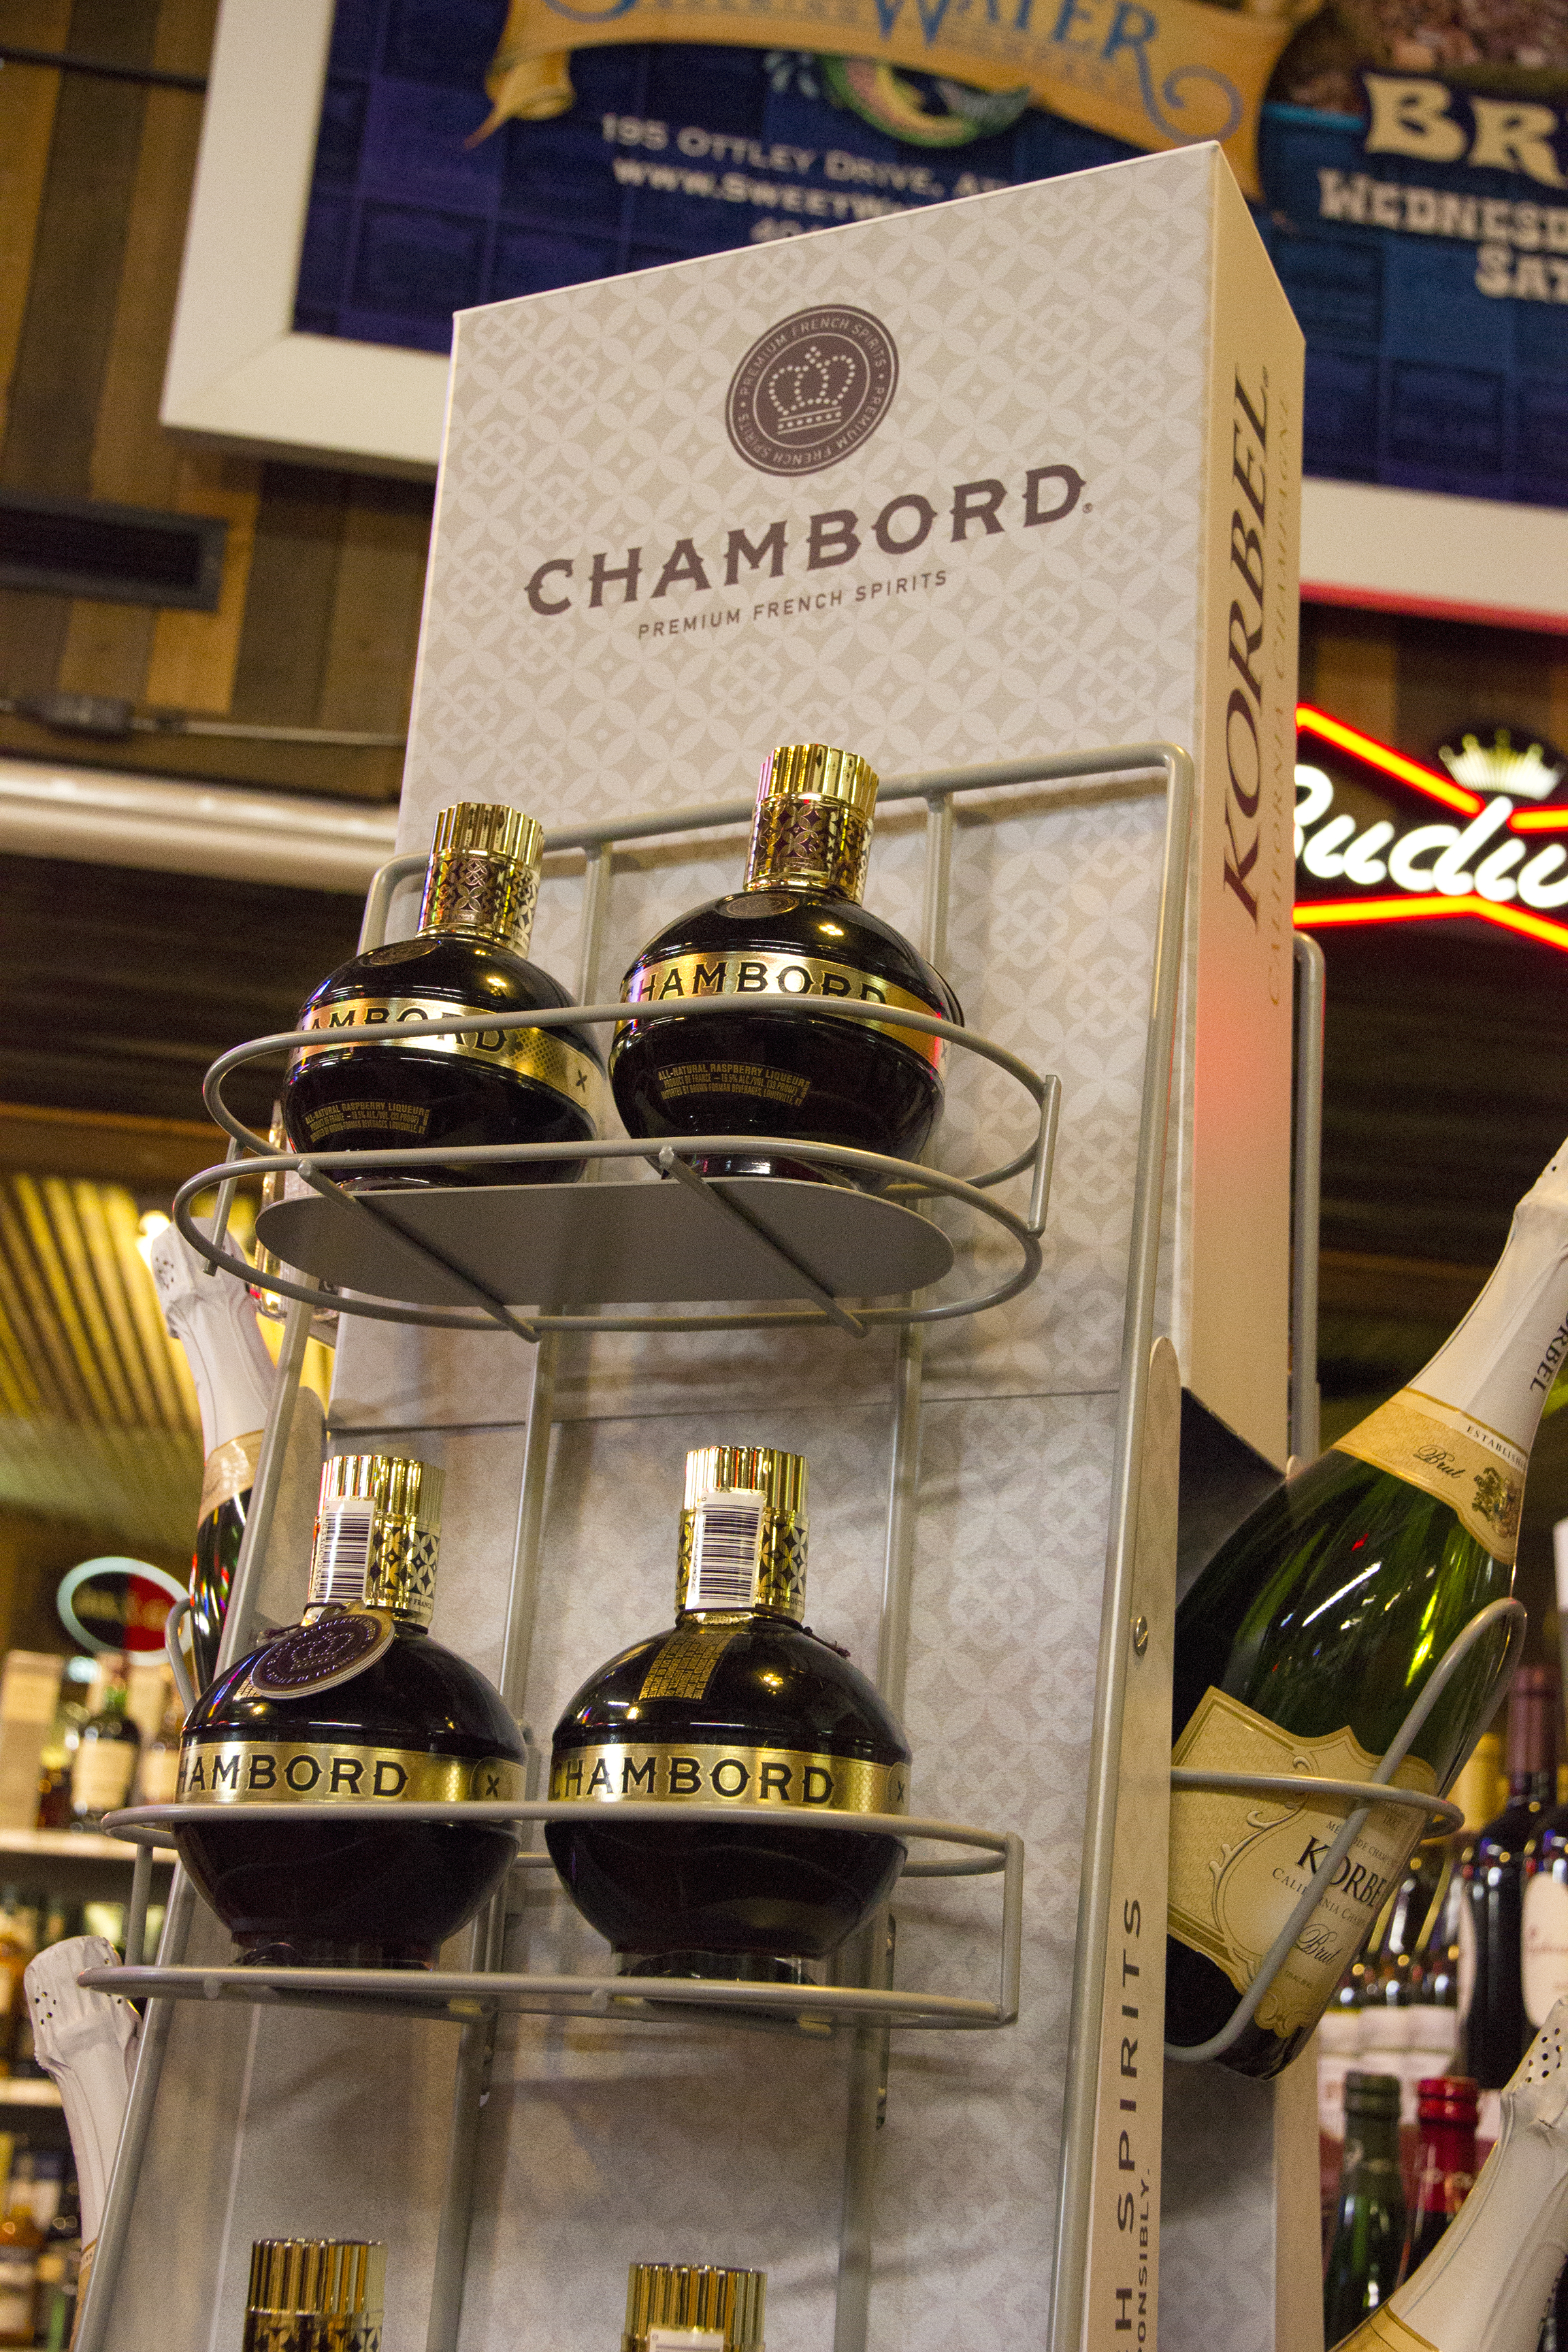 Chambord Floor Display